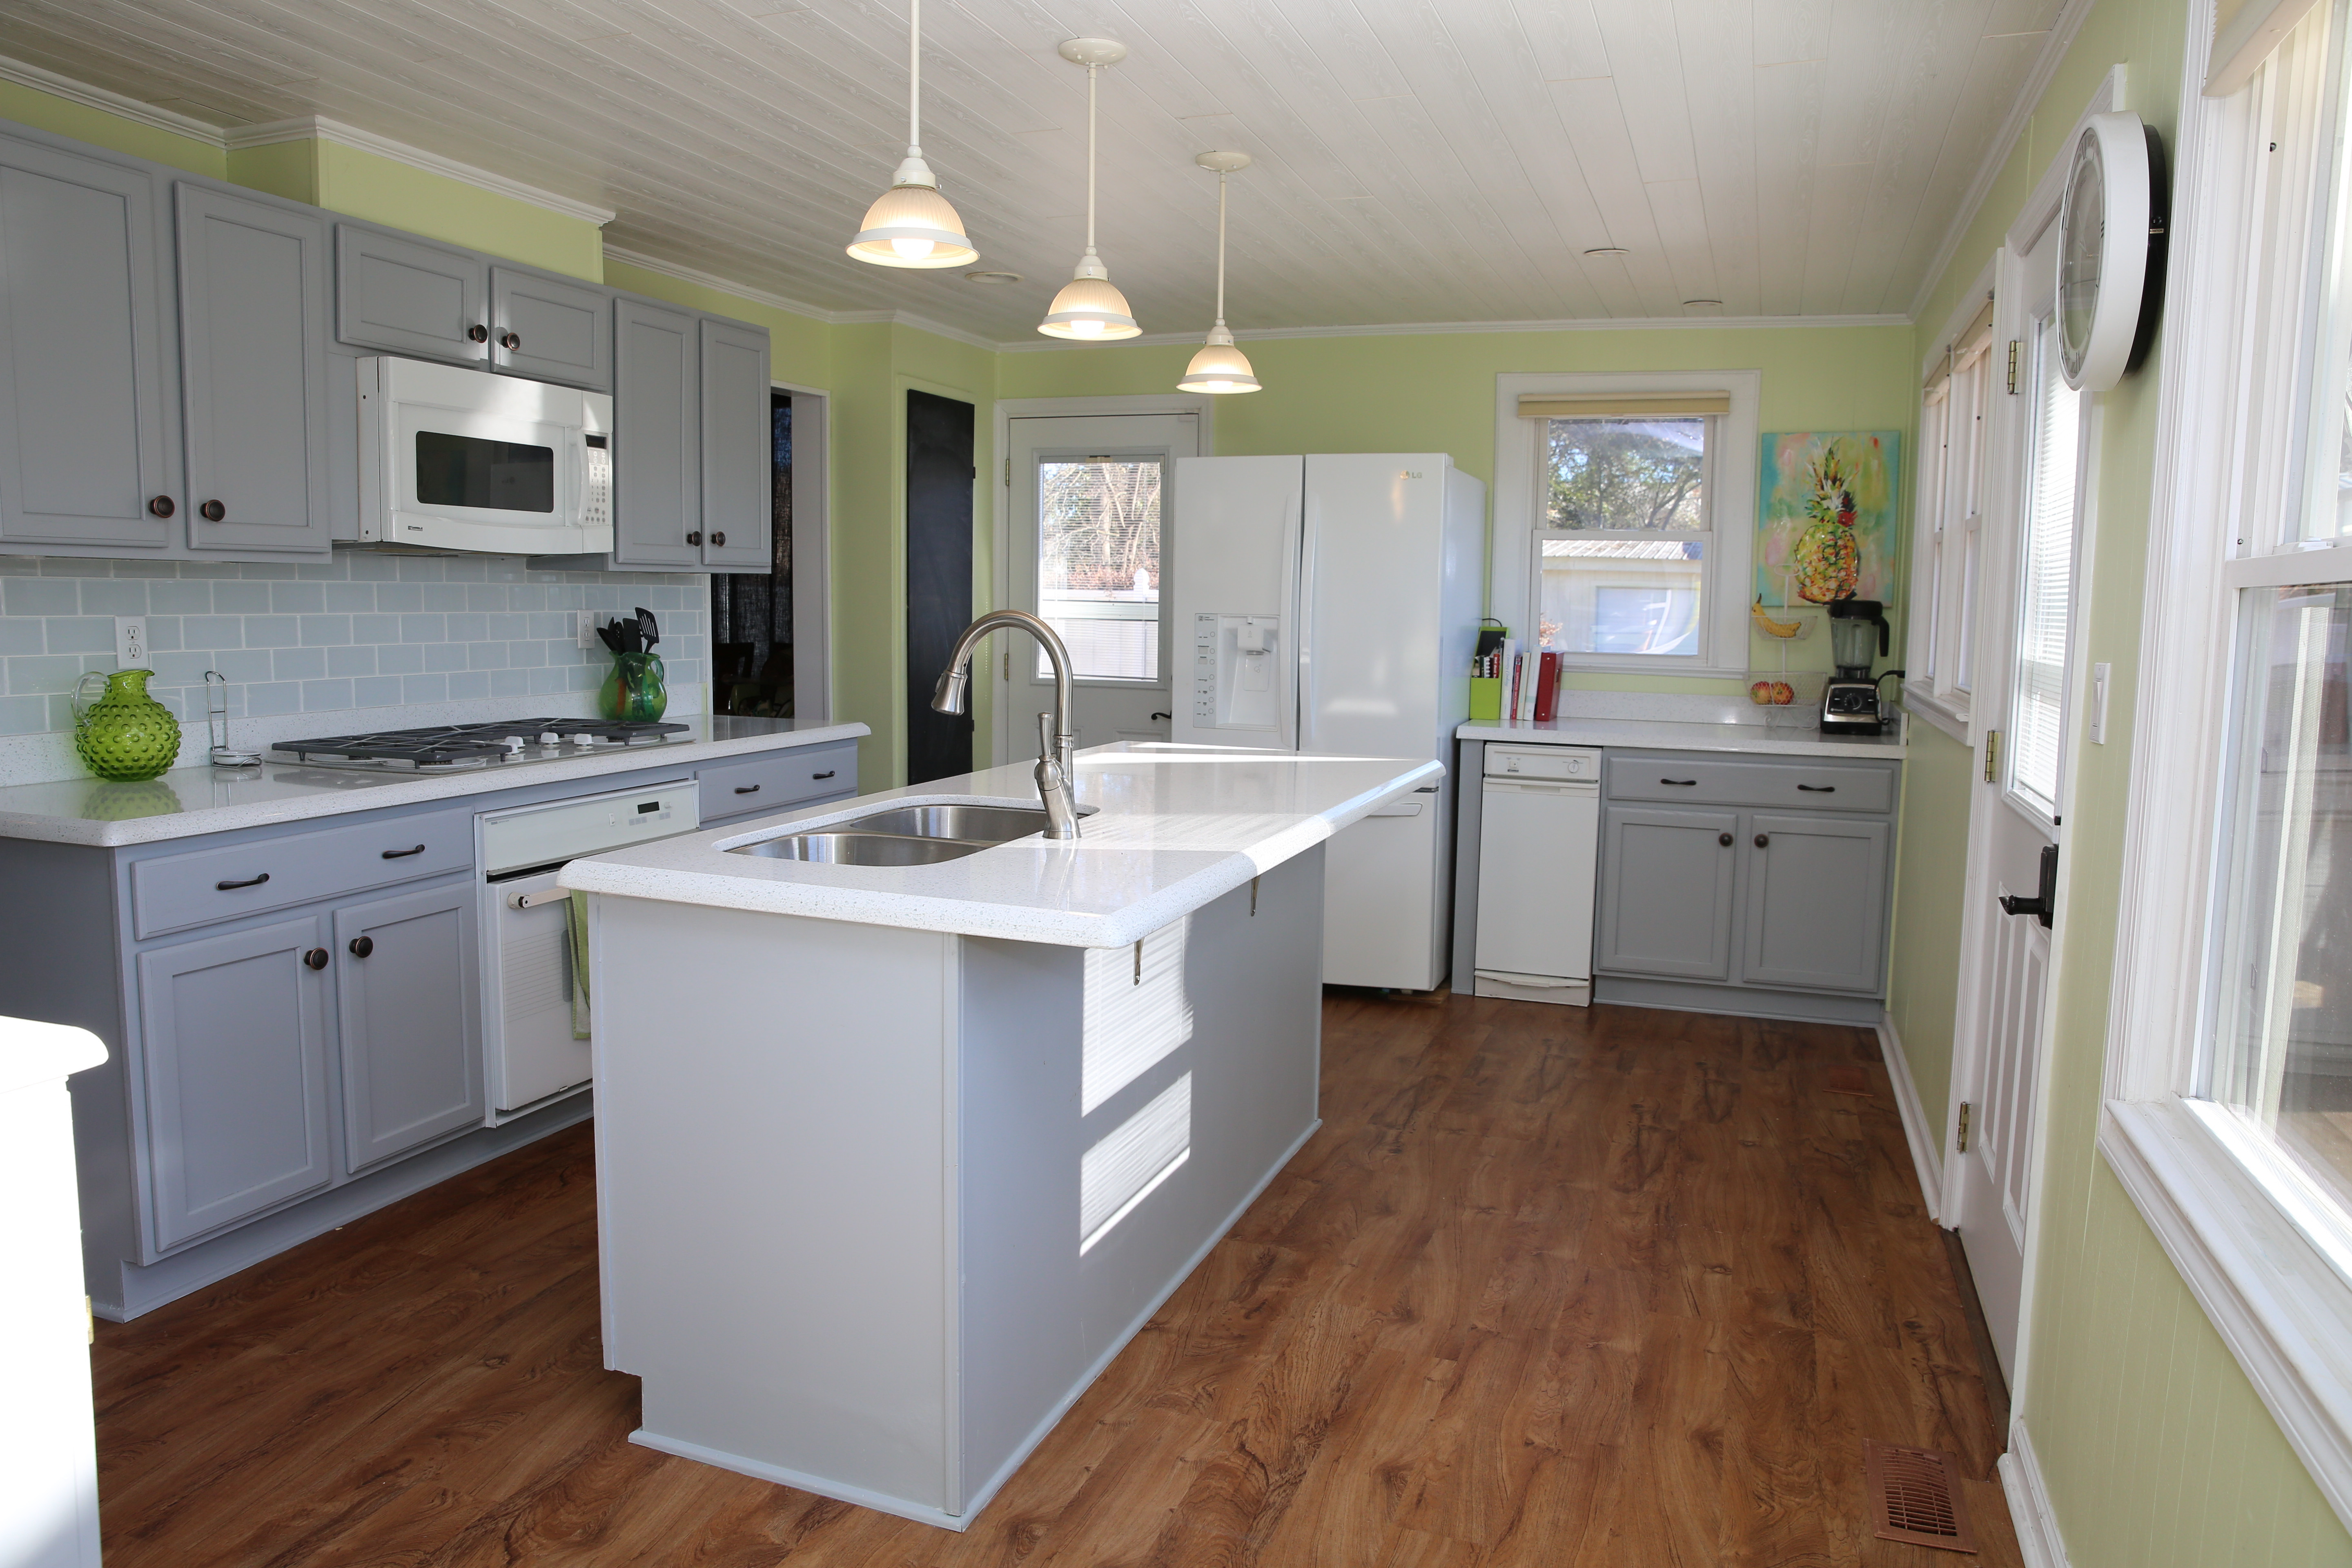 how much does hardwood flooring cost per square foot of hardwood floor installation cost per sq ft fresh 123 w church street intended for hardwood floor installation cost per sq ft fresh 123 w church street the property shop international